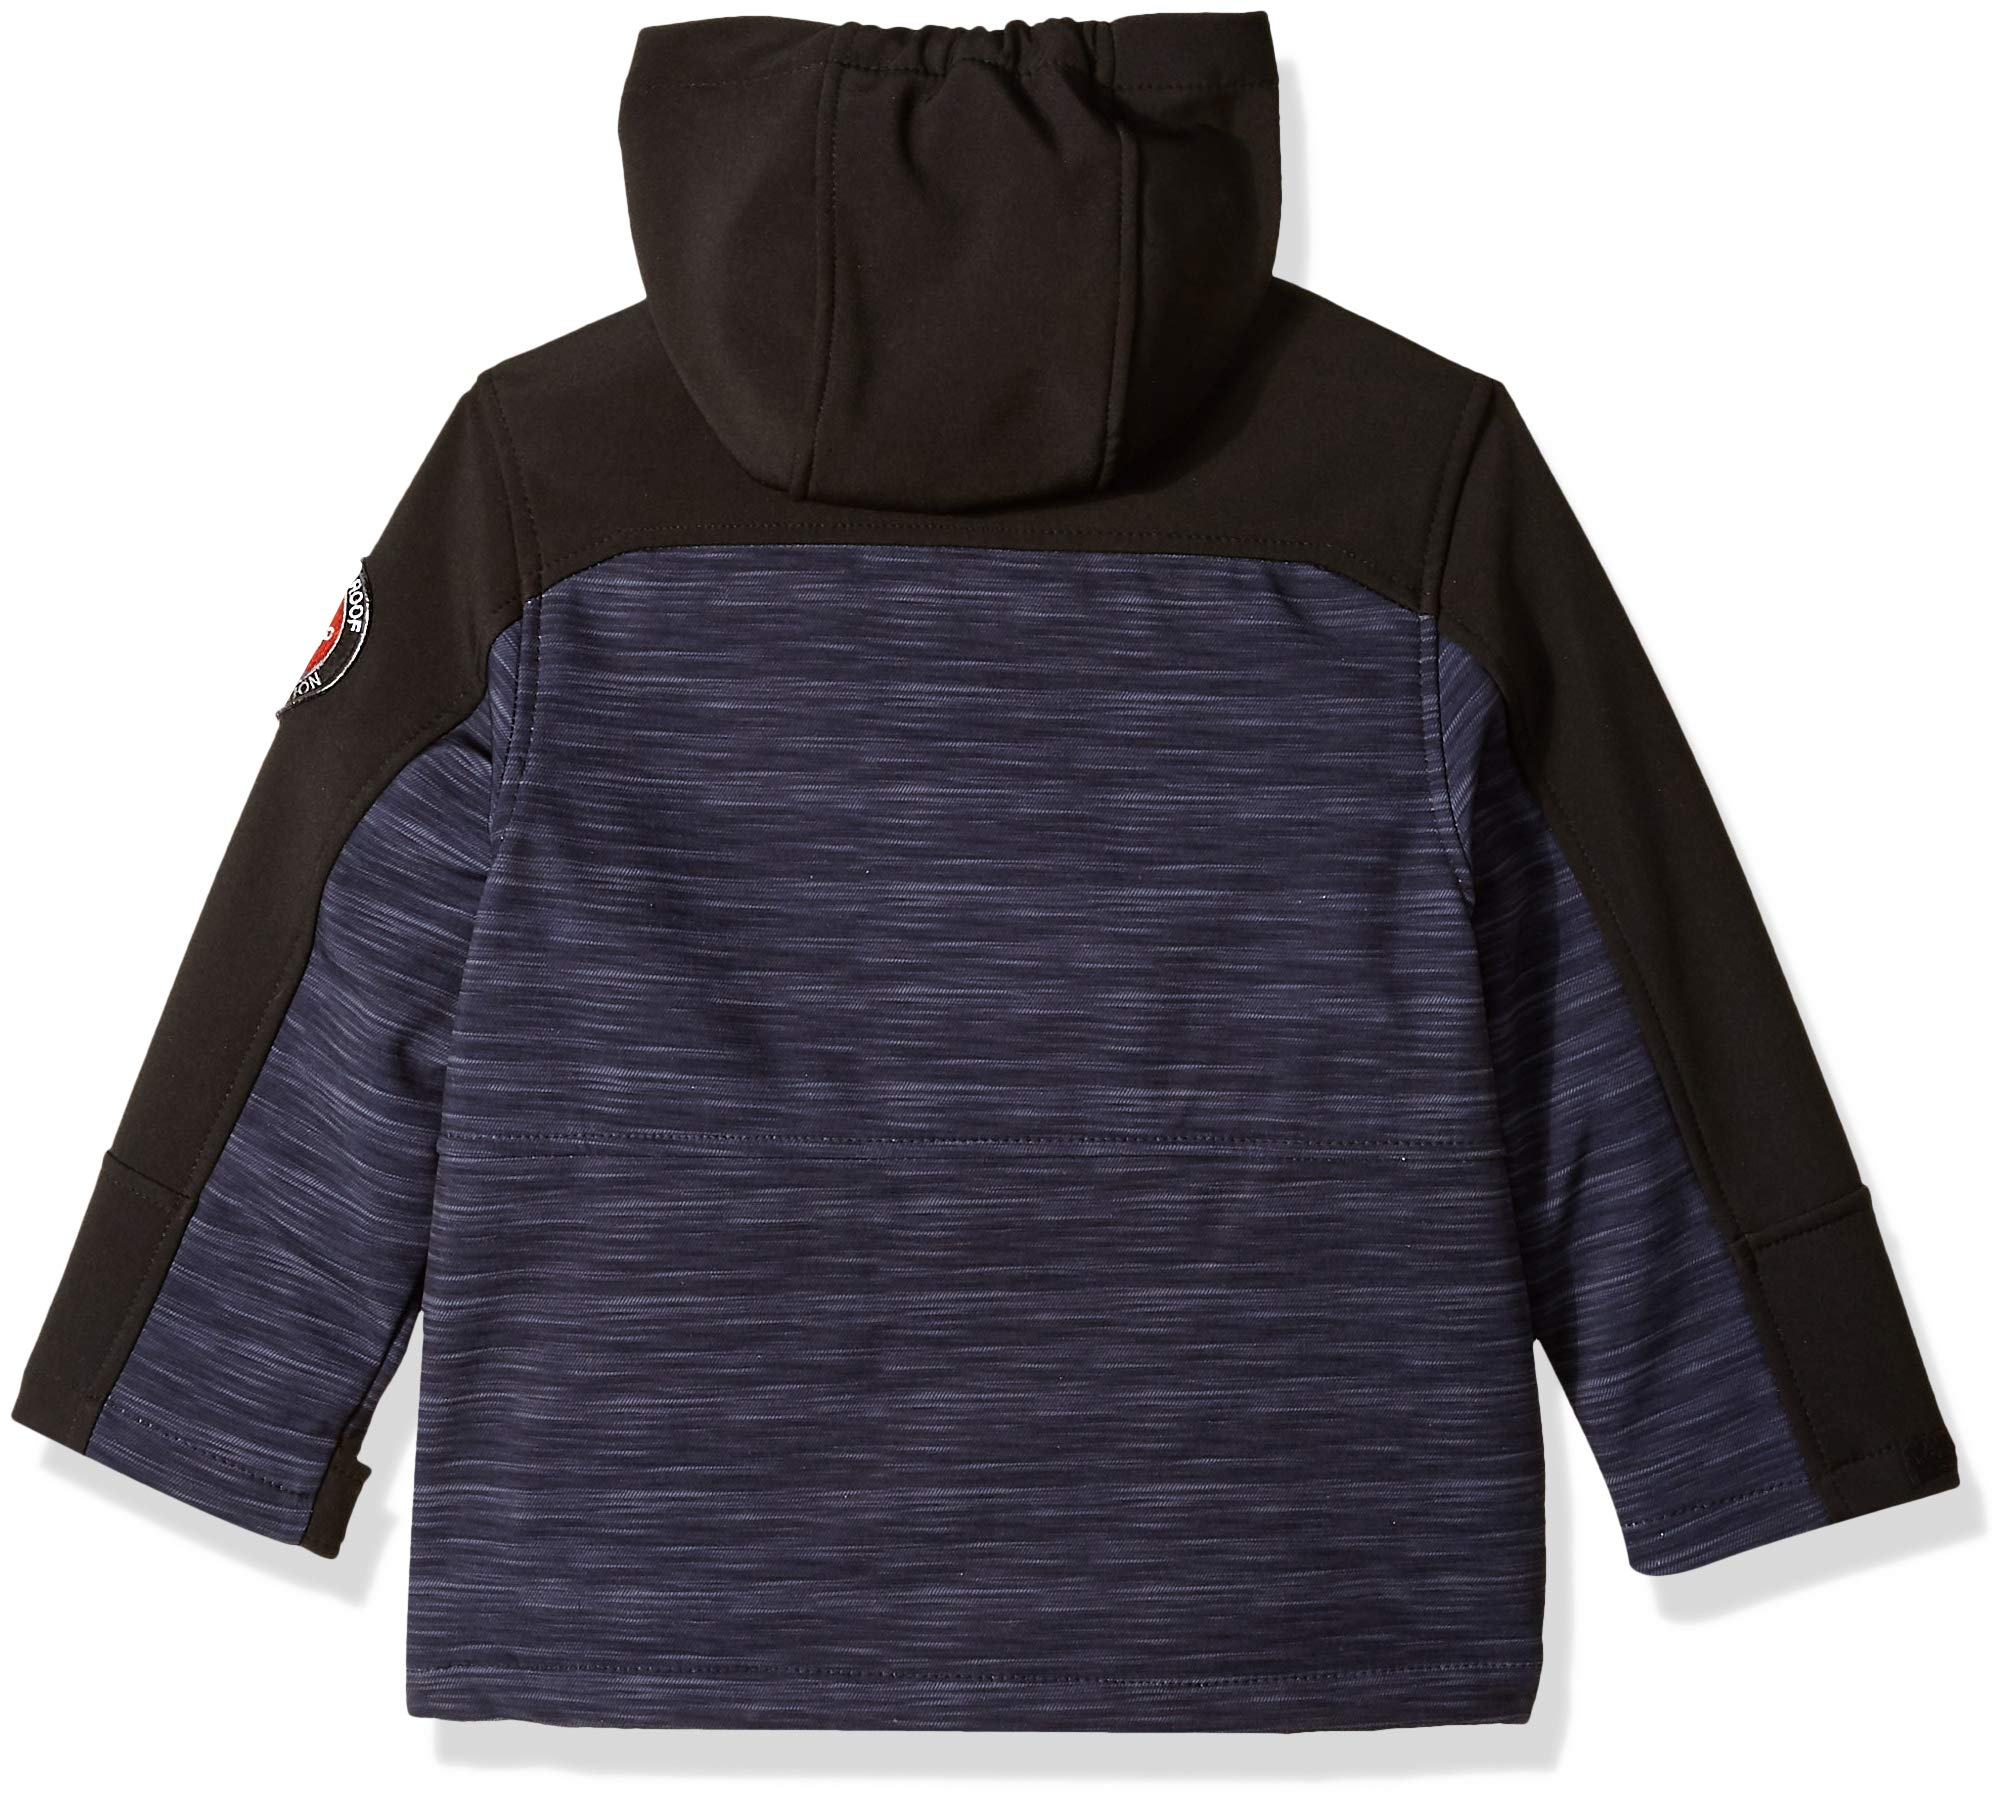 32 DEGREES Weatherproof Boys' Little Outerwear Jacket (More Styles Available), Softshell Systems Charcoal Heather/Black, 4 by 32 DEGREES (Image #2)